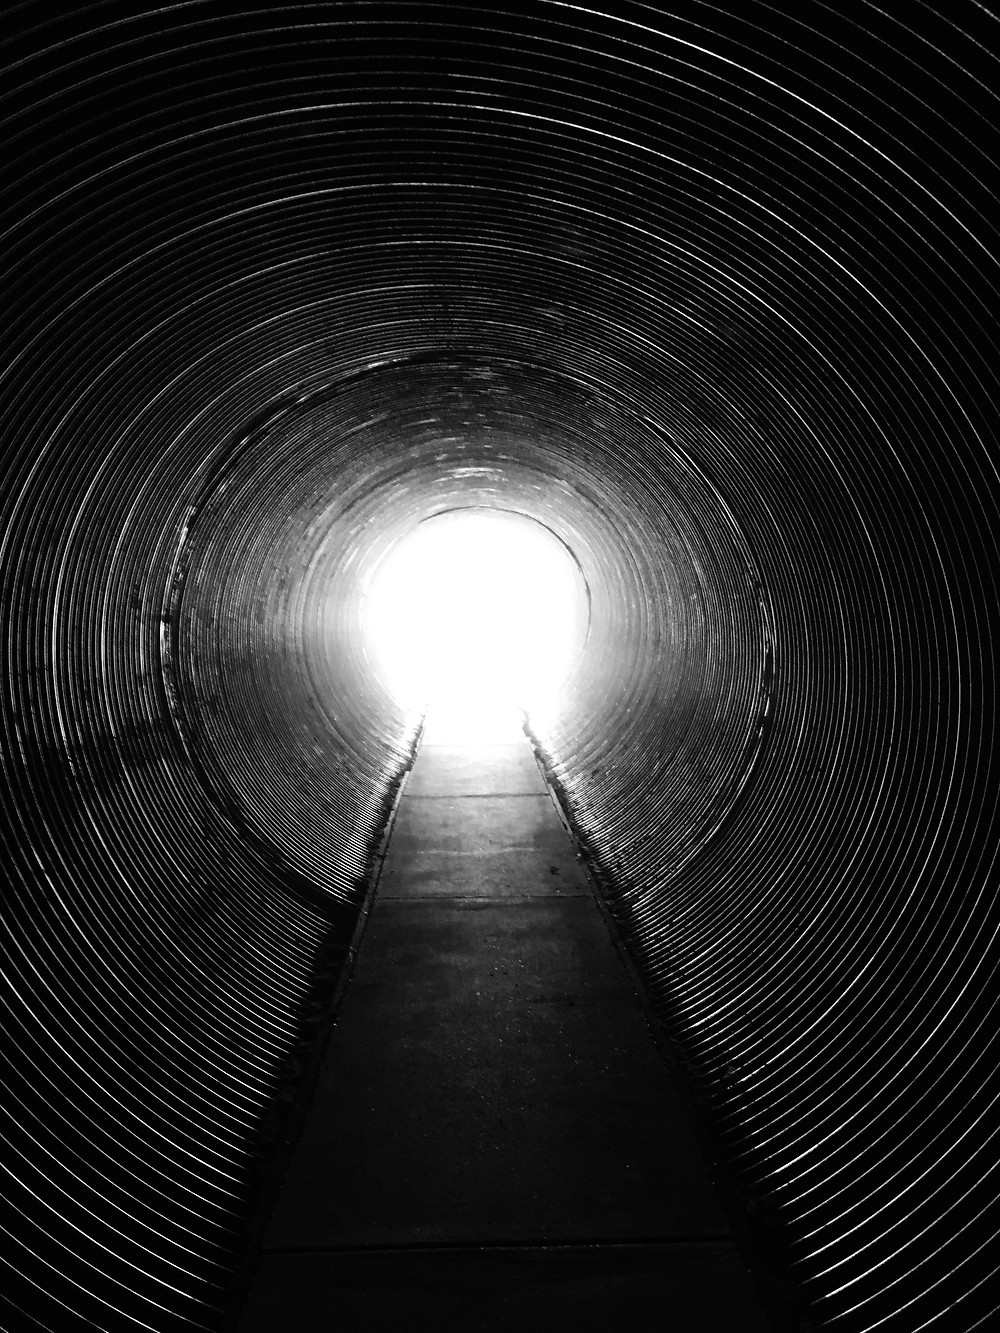 A dark tunnel with light at the end.